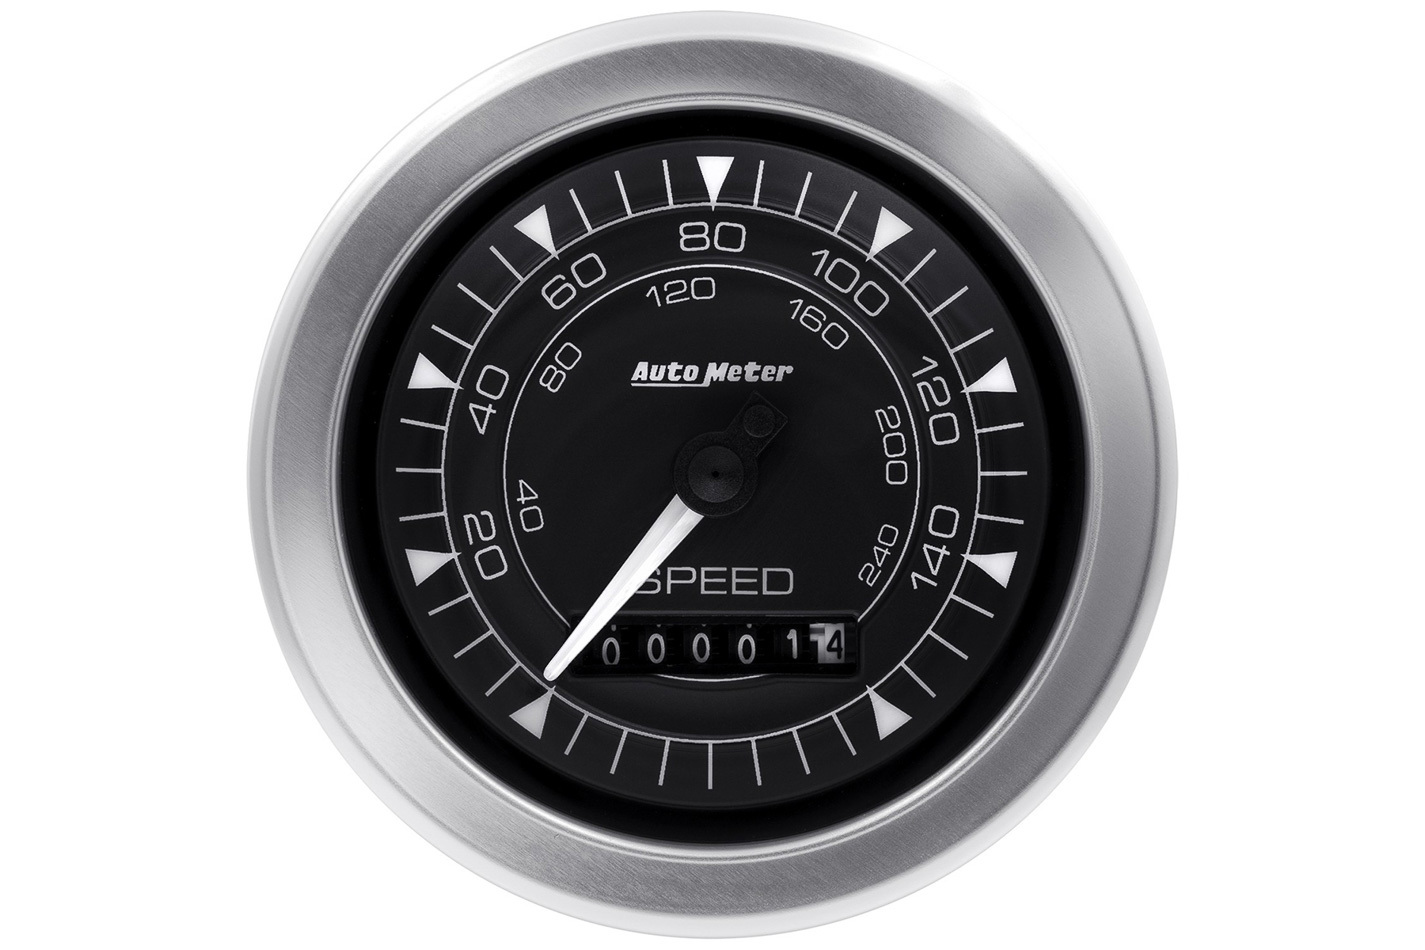 Auto Meter 8188 Speedometer, Chrono Series, 160 MPH, Electric, Analog, 3-3/8 in Diameter, Programmable, Black Face, Each